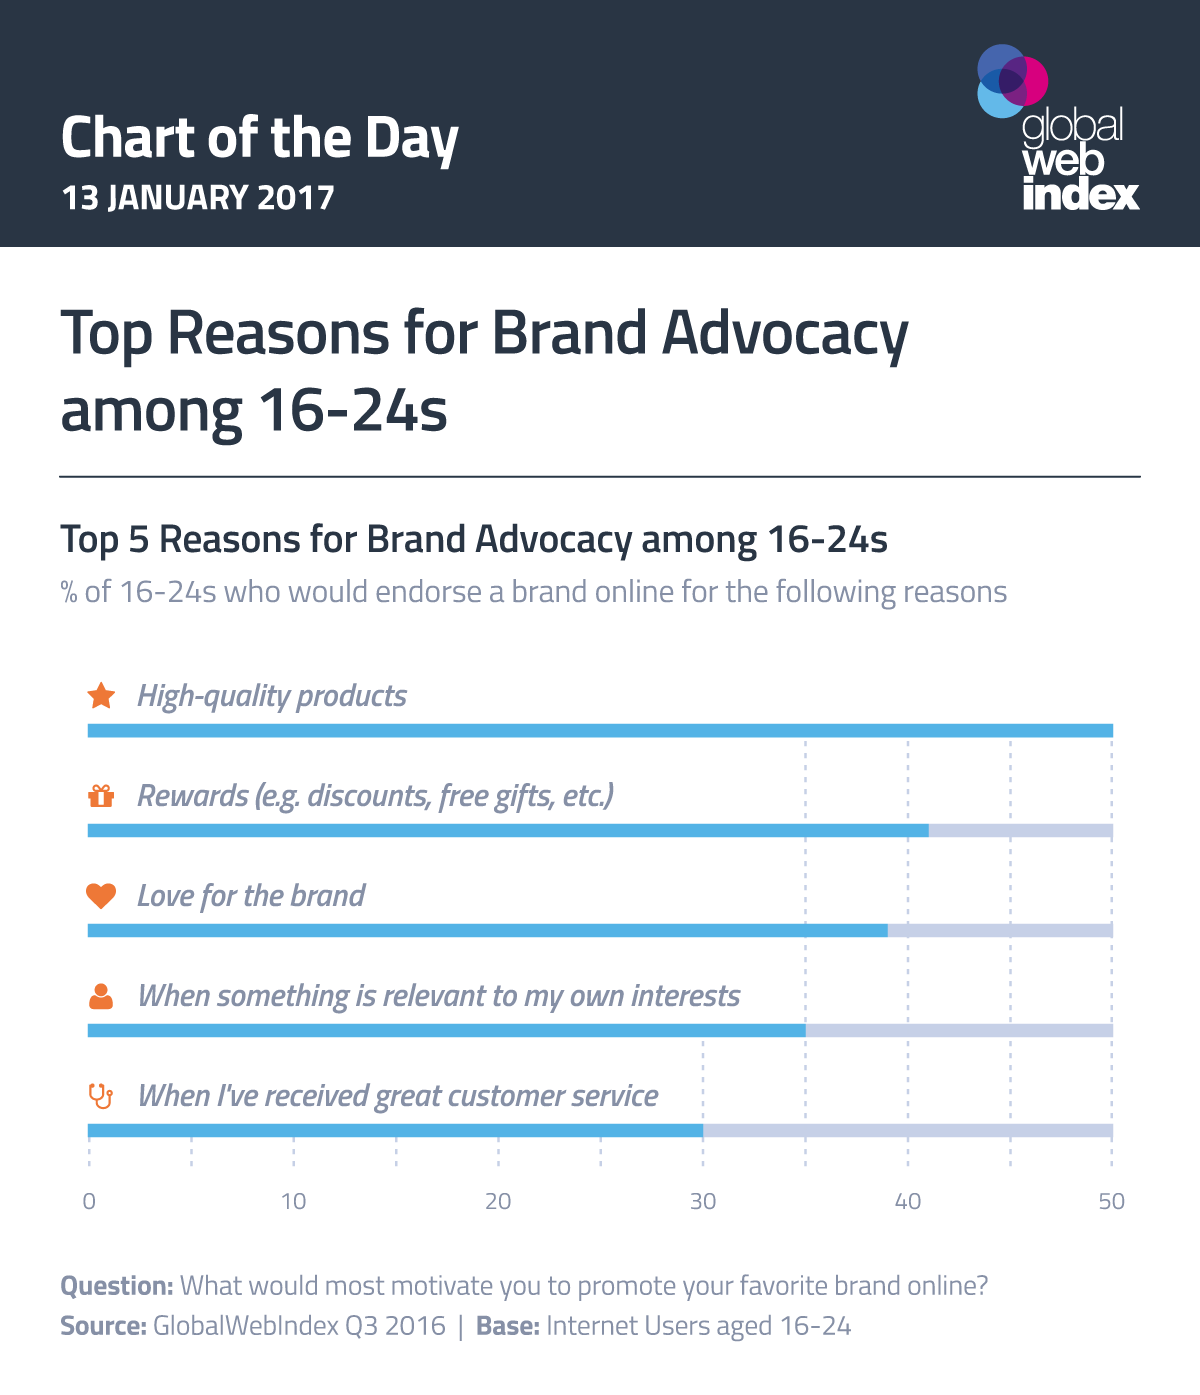 Top Reasons for Brand Advocacy among 16-24s